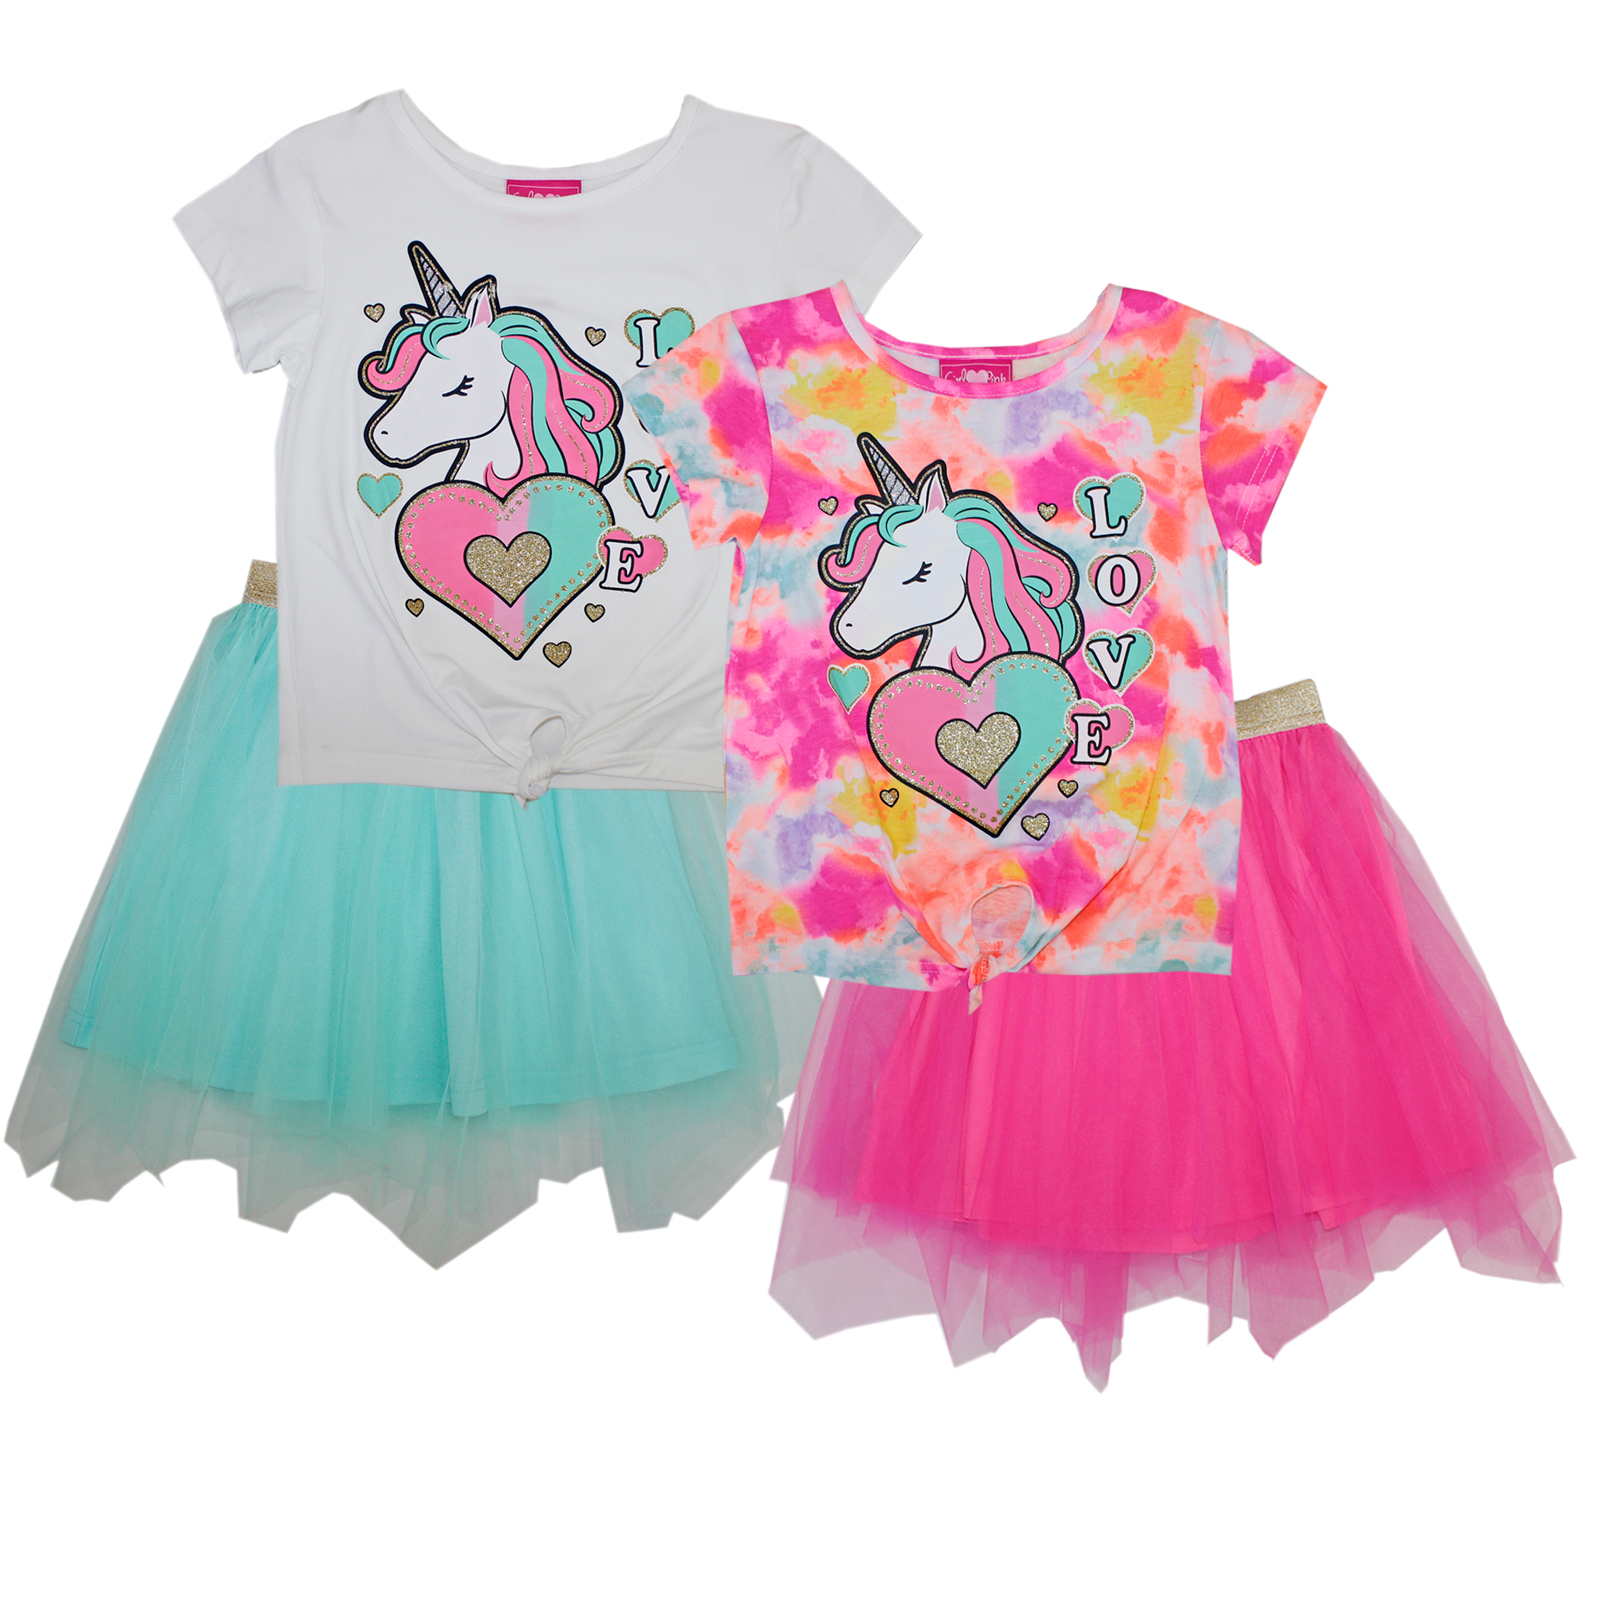 GIRLS PINK Toddler Unicorn Love Knit Top w Tulle Skirt